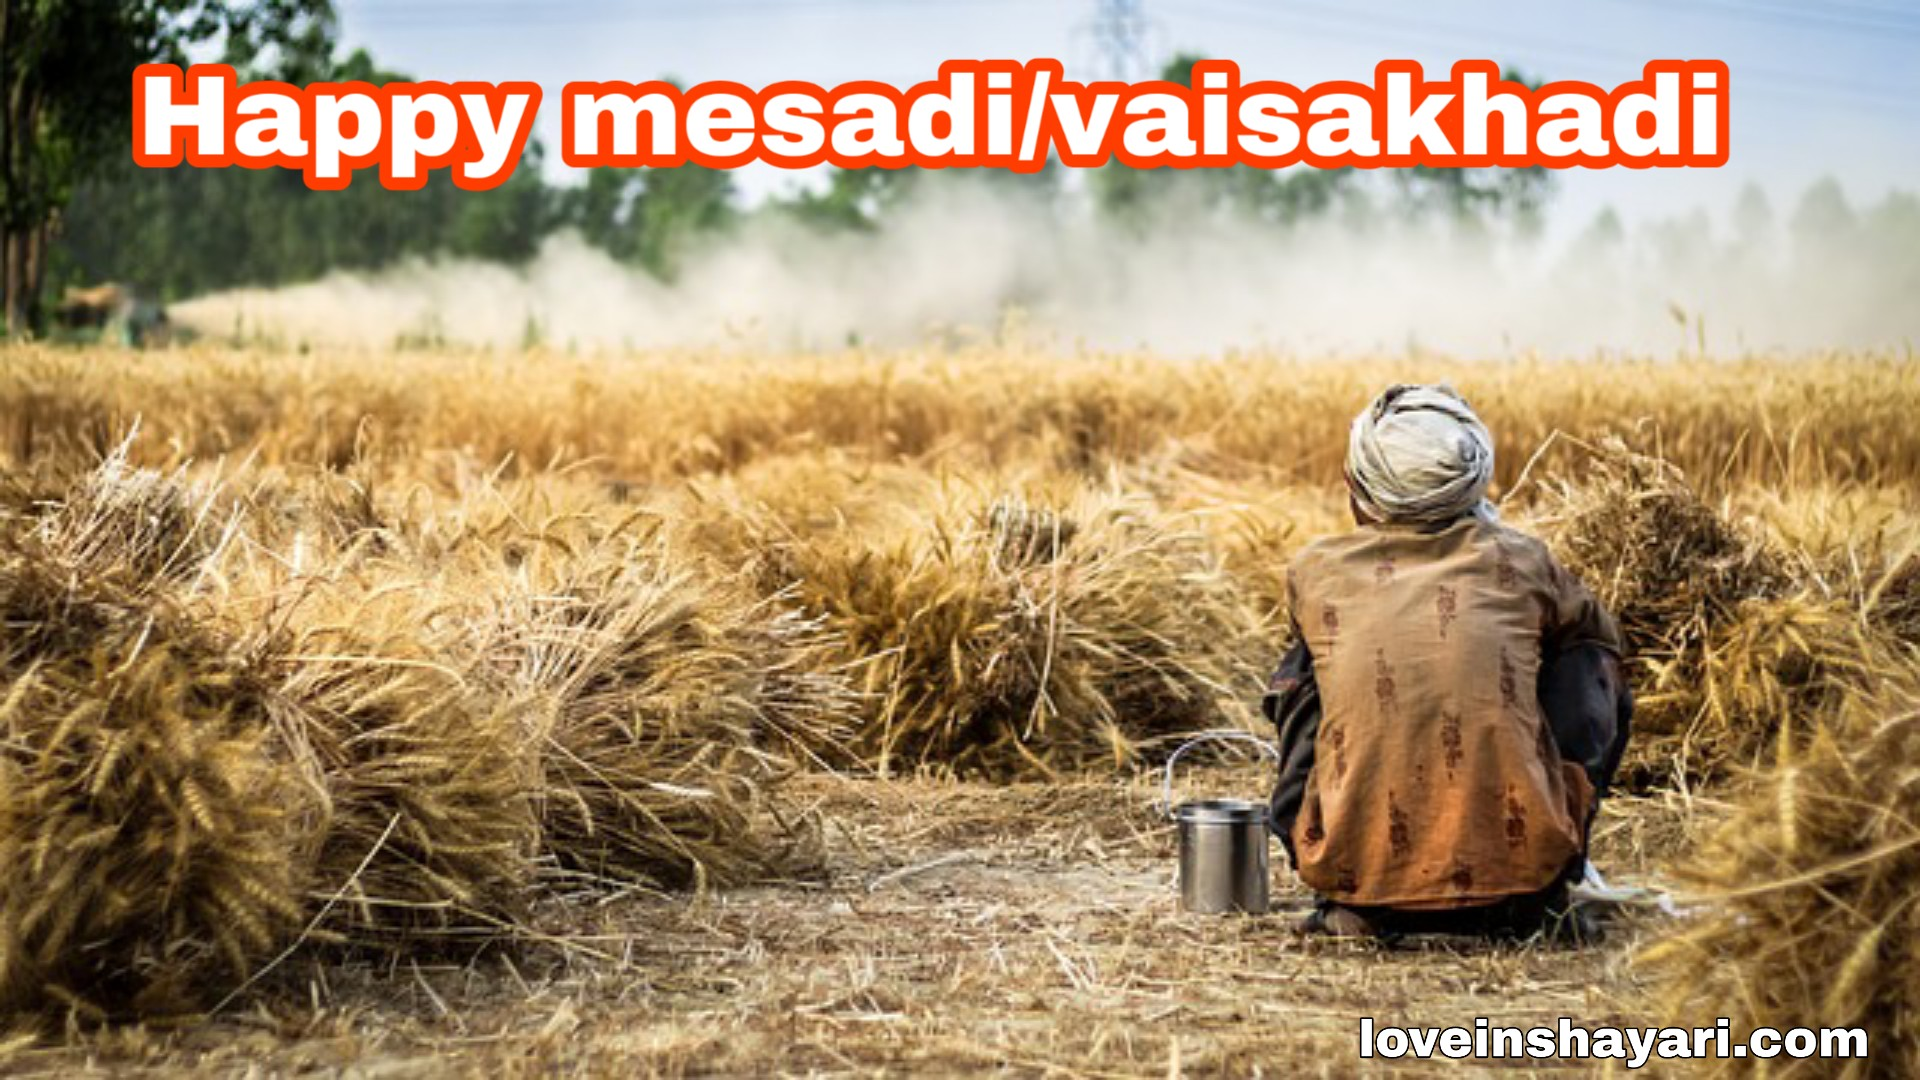 Photo of Mesadi vaisakhadi status whatsapp status 2020